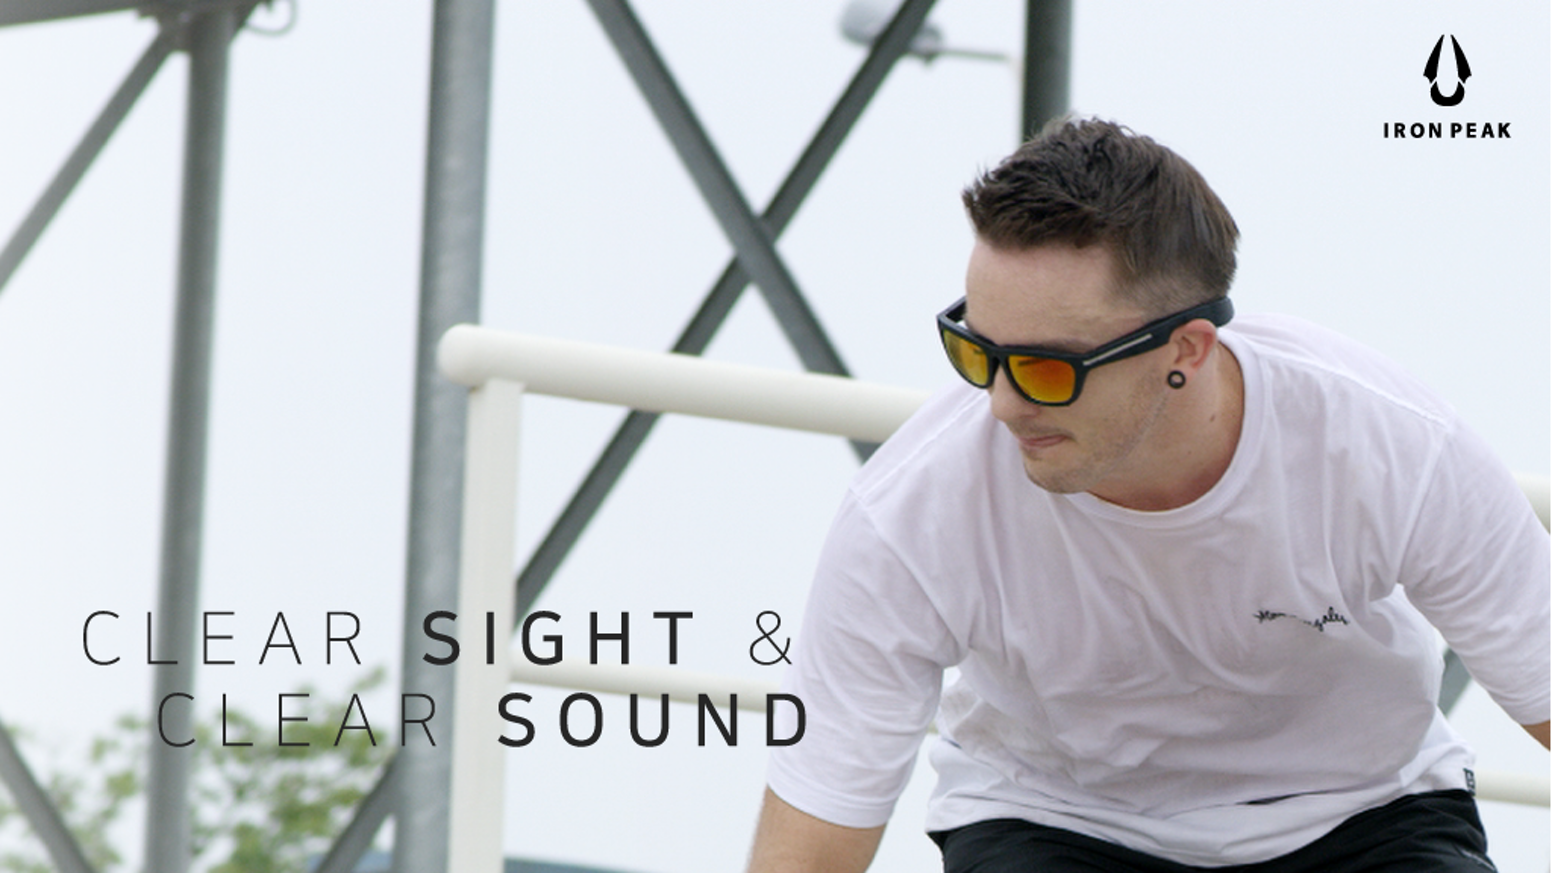 15d220c1bc4e1 IRONPEAK   Sunglasses and Music Without The Wires by IRONPEAK ...